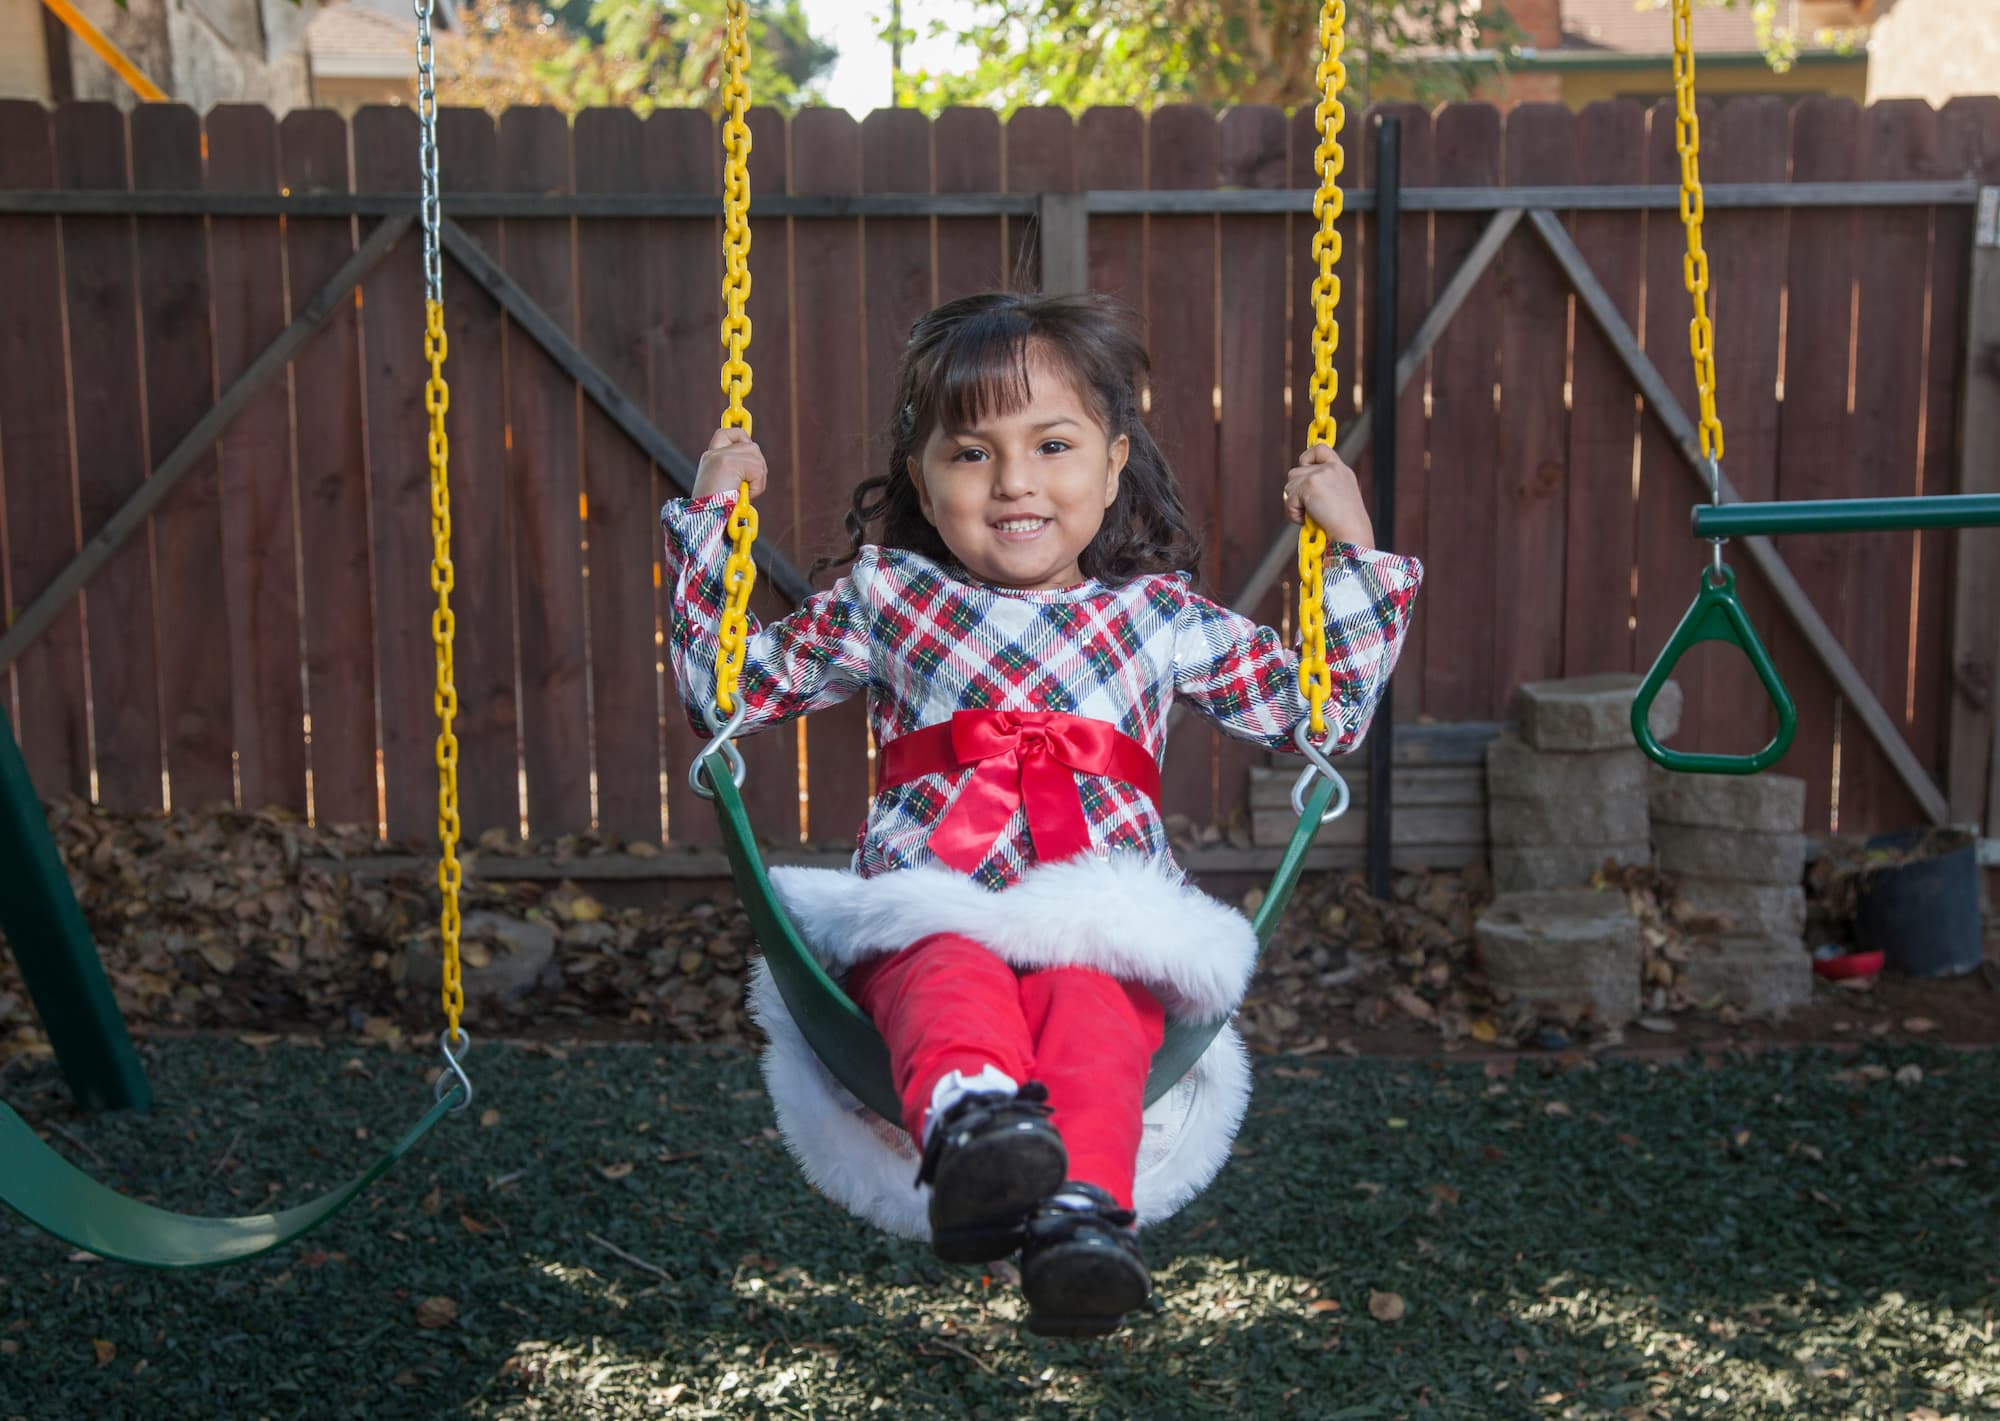 Brown-haired girl in a checkered dress and red pants sitting on a swing in front of a wooden fence